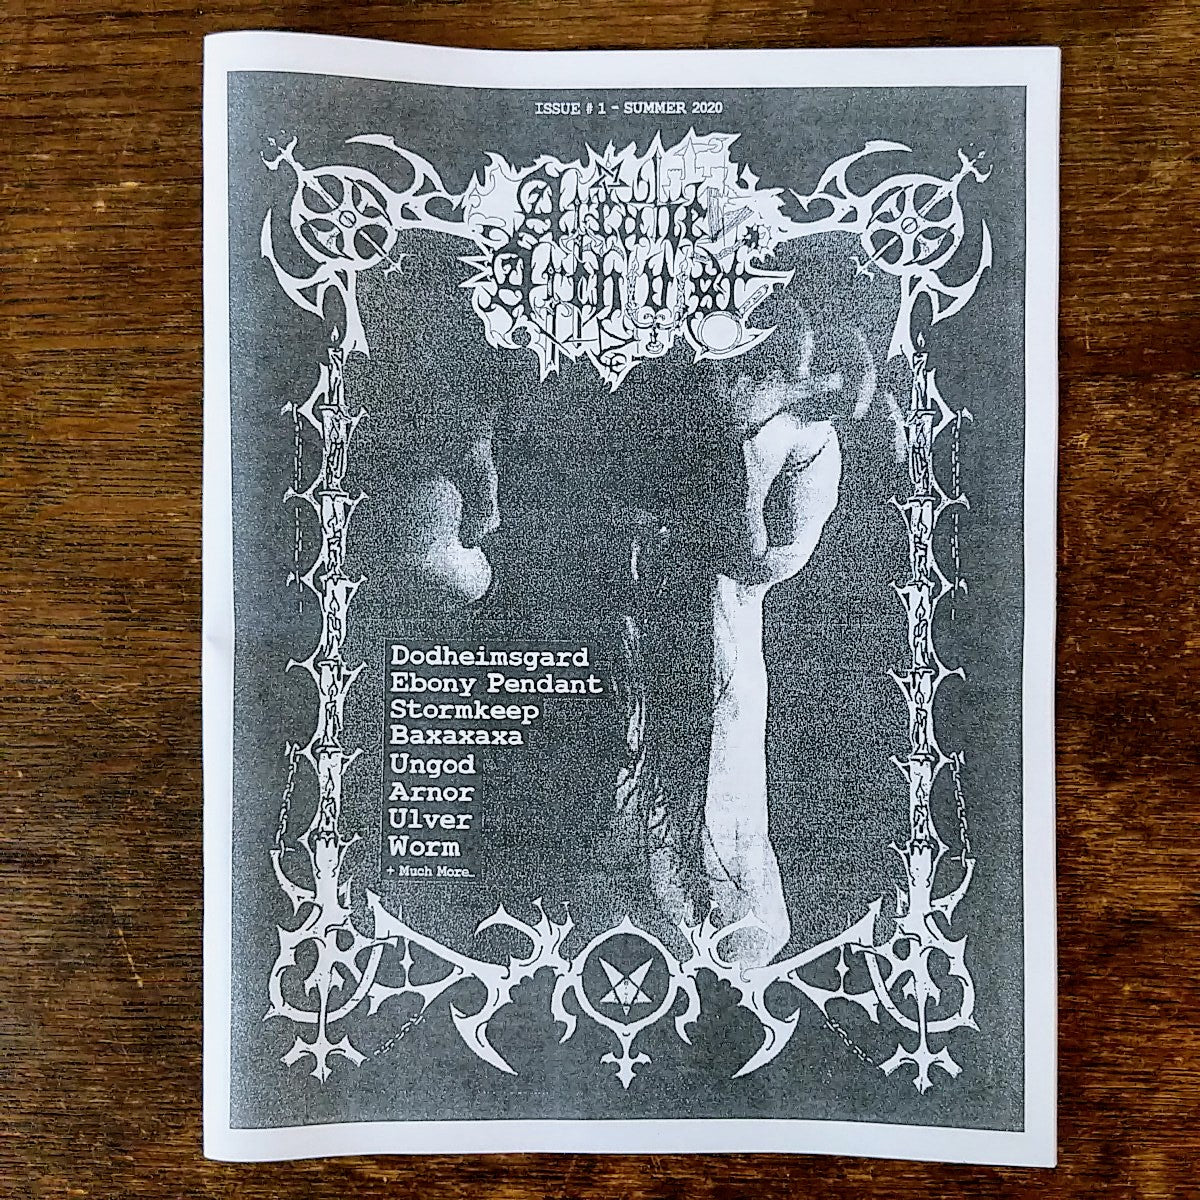 [SOLD OUT] ARCANE ARCHIVIST ISSUE #1